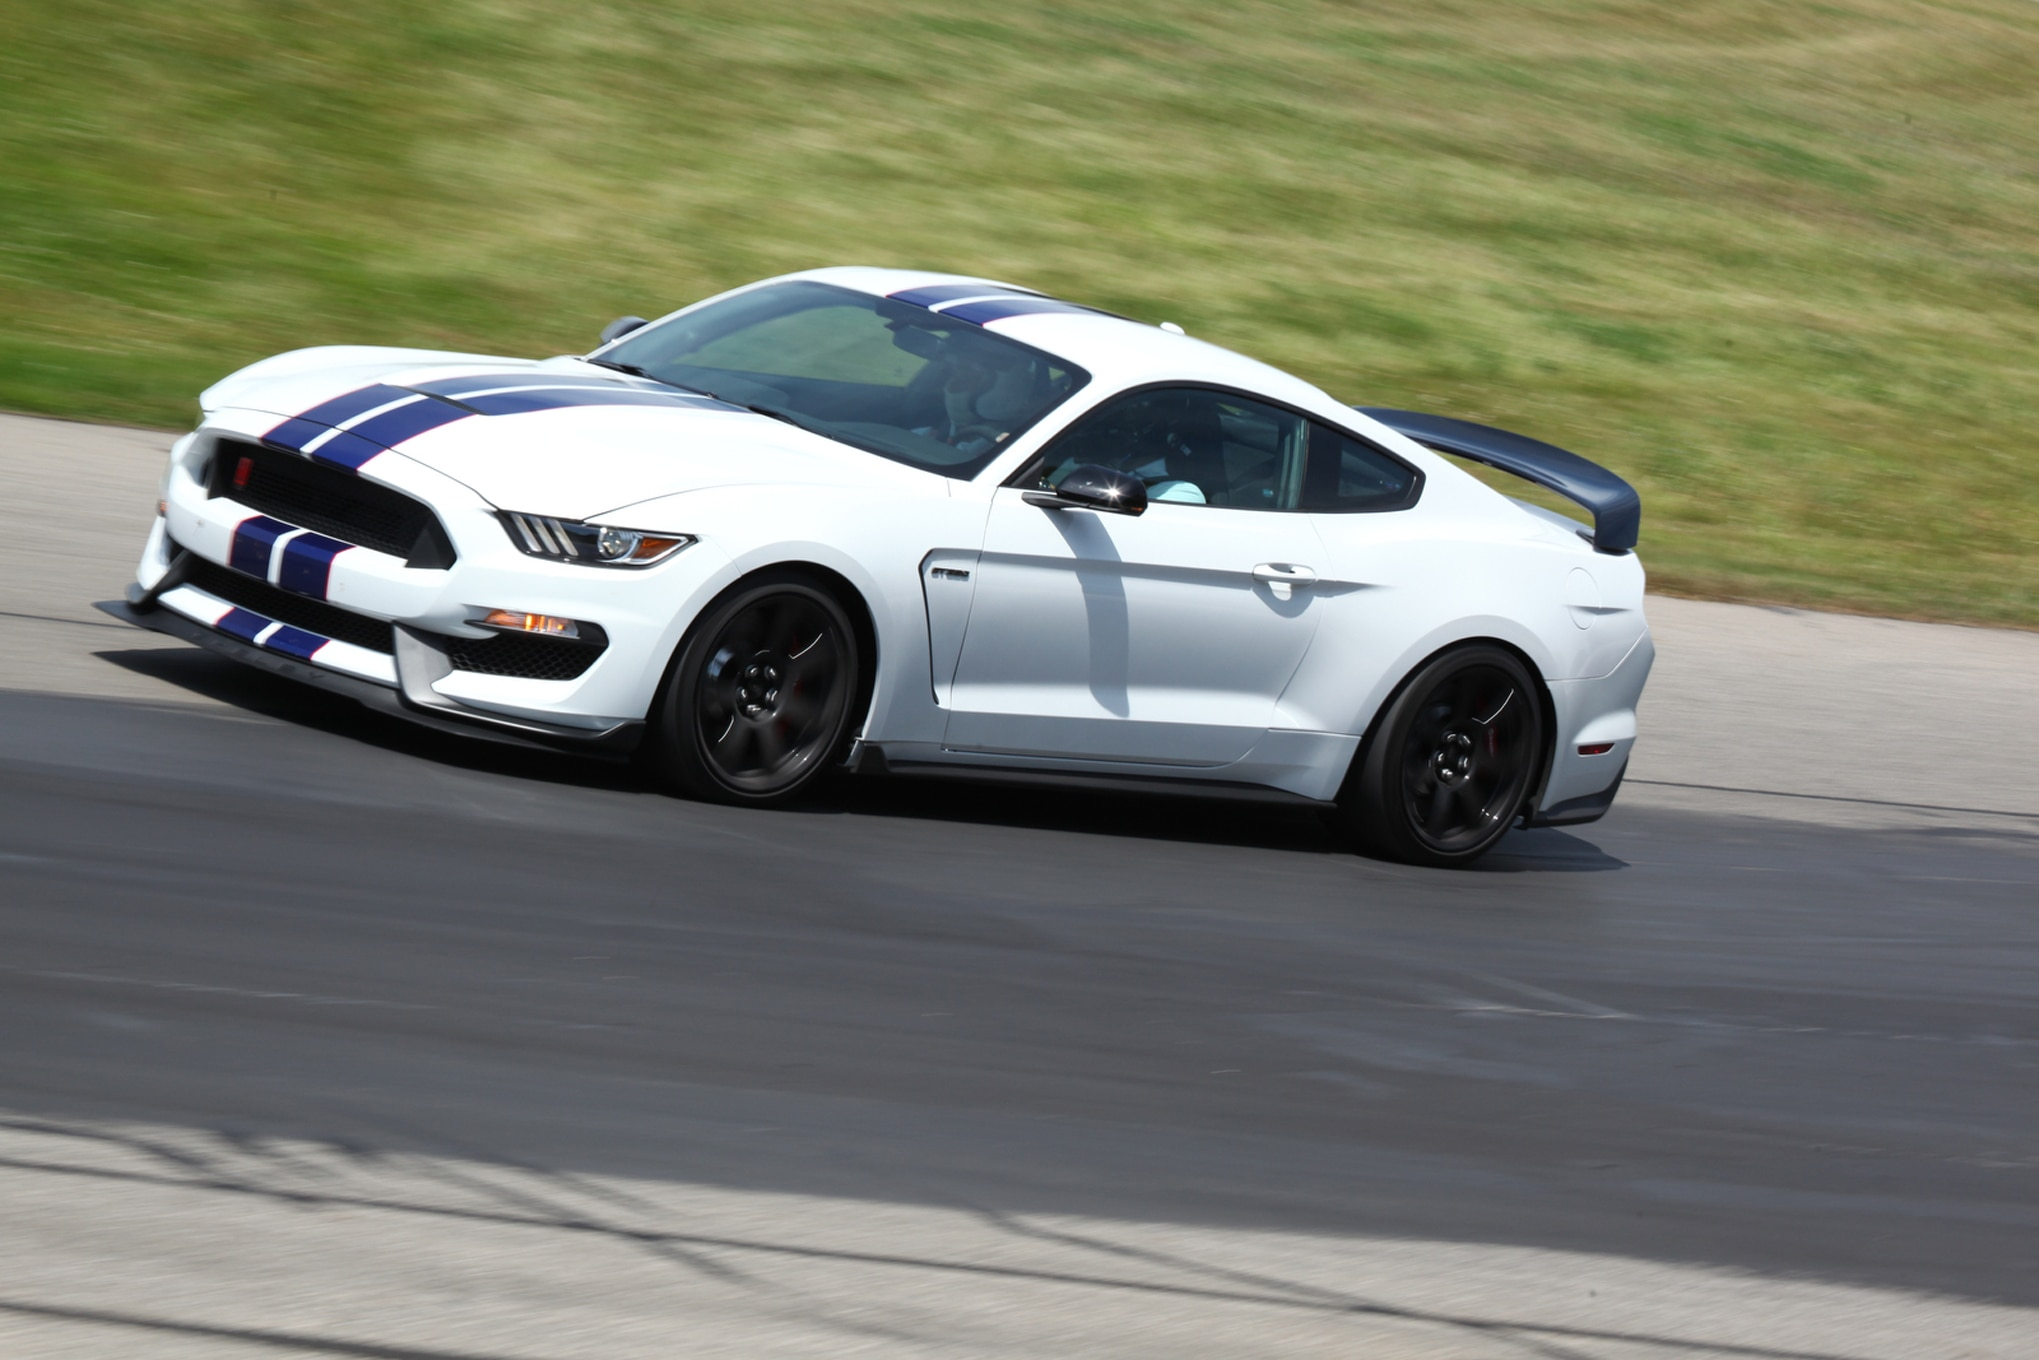 Watch Us Go for Hot Laps in the 2016 Ford Shelby GT350R Mustang